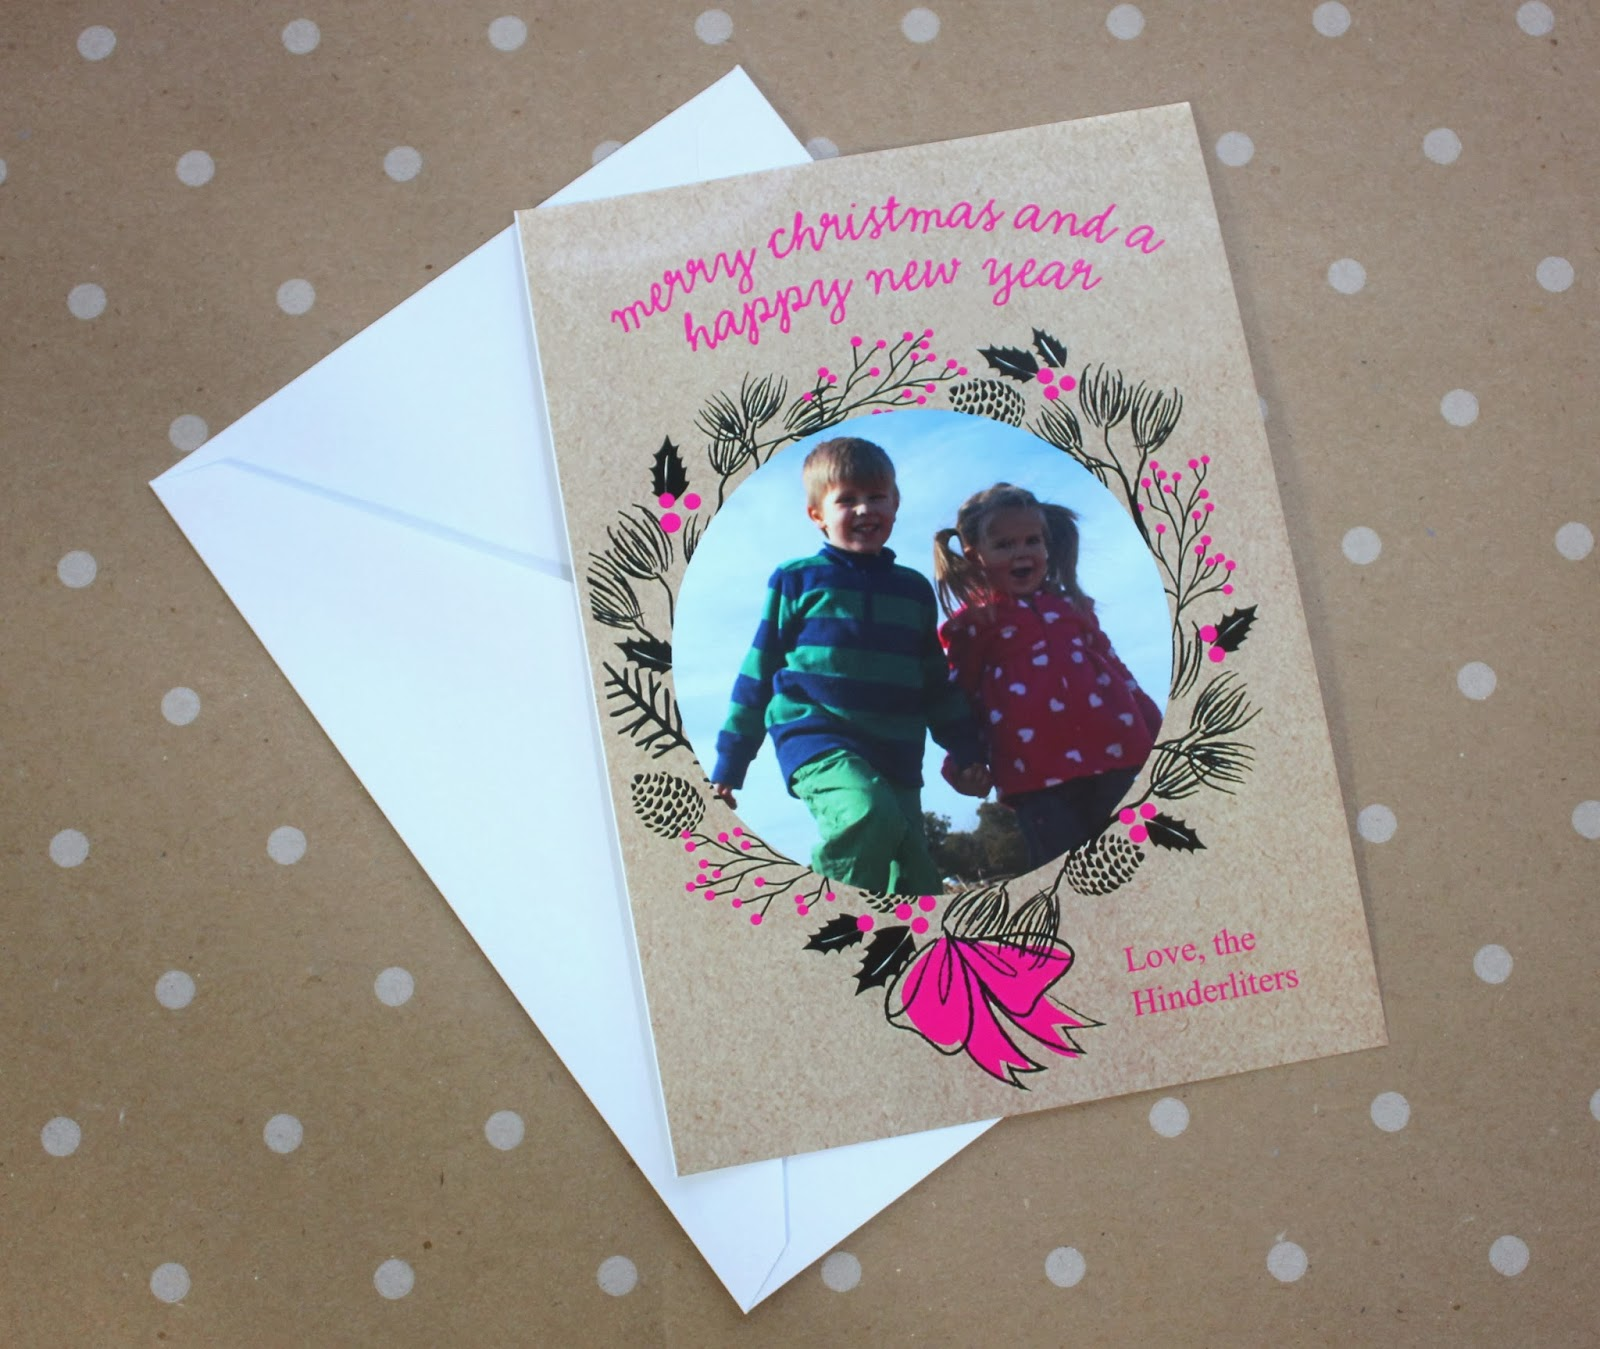 Lines Across Reviews: Printing Holiday Cards With The